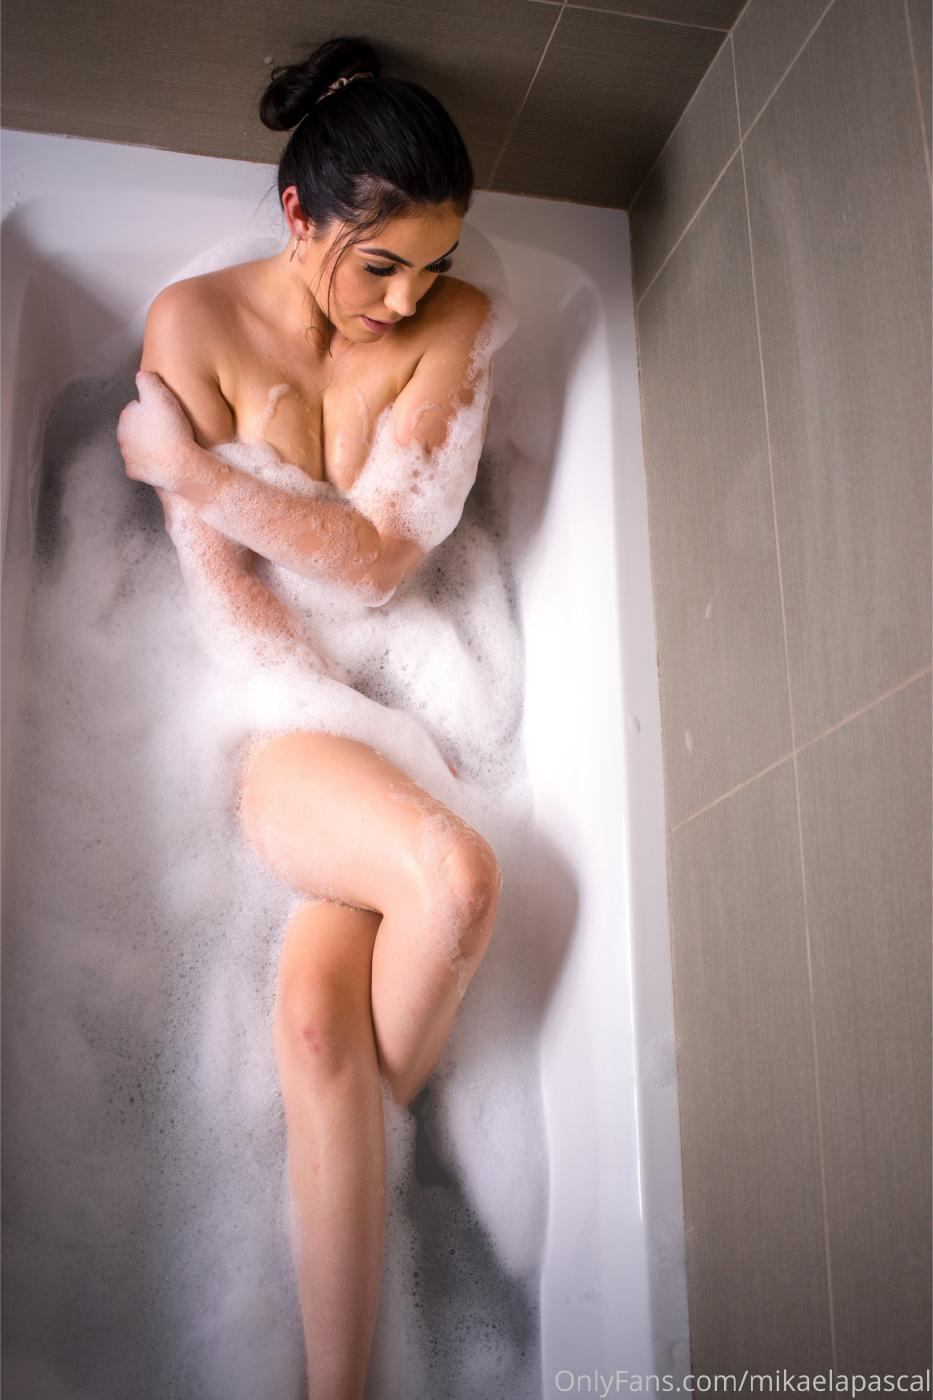 Mikaela Pascal Nude In Bath Onlyfans Set Leaked 0011